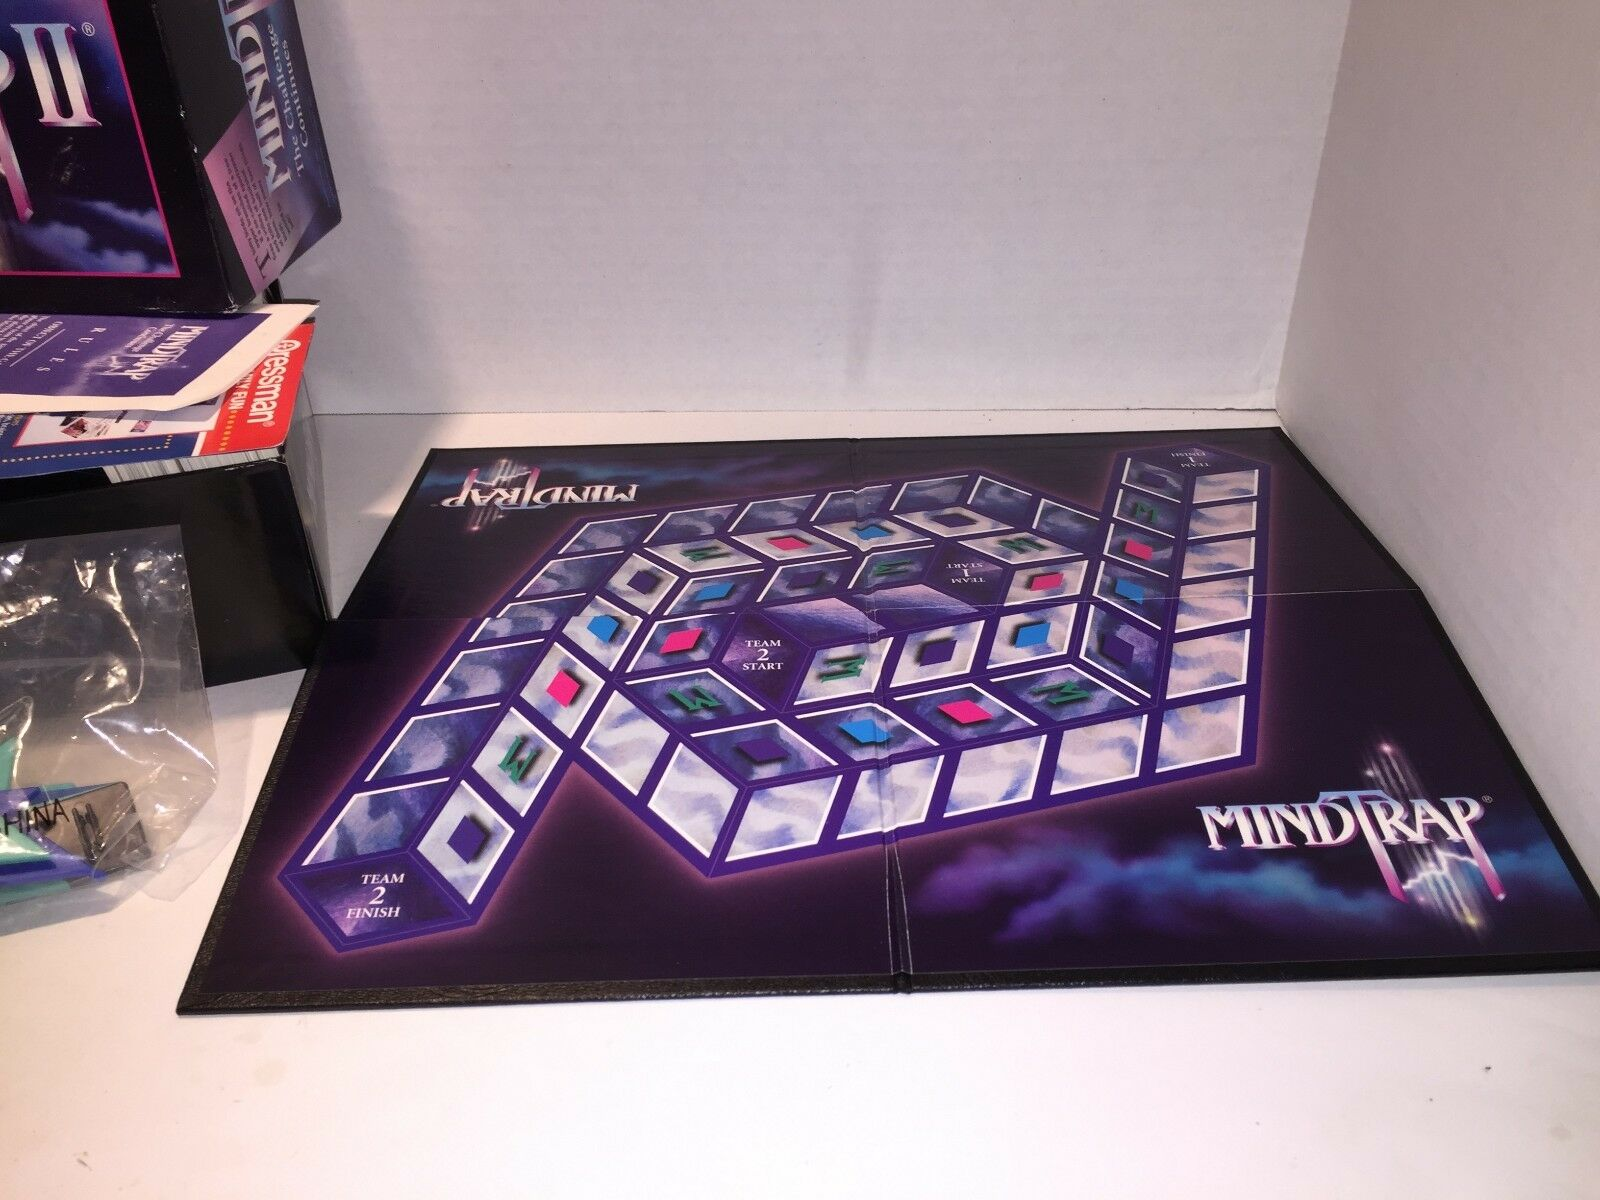 Mind Trap 1 and 2 Games It Will Challenge Challenge Challenge the Way You Think & See 1991 1997 ef7de9